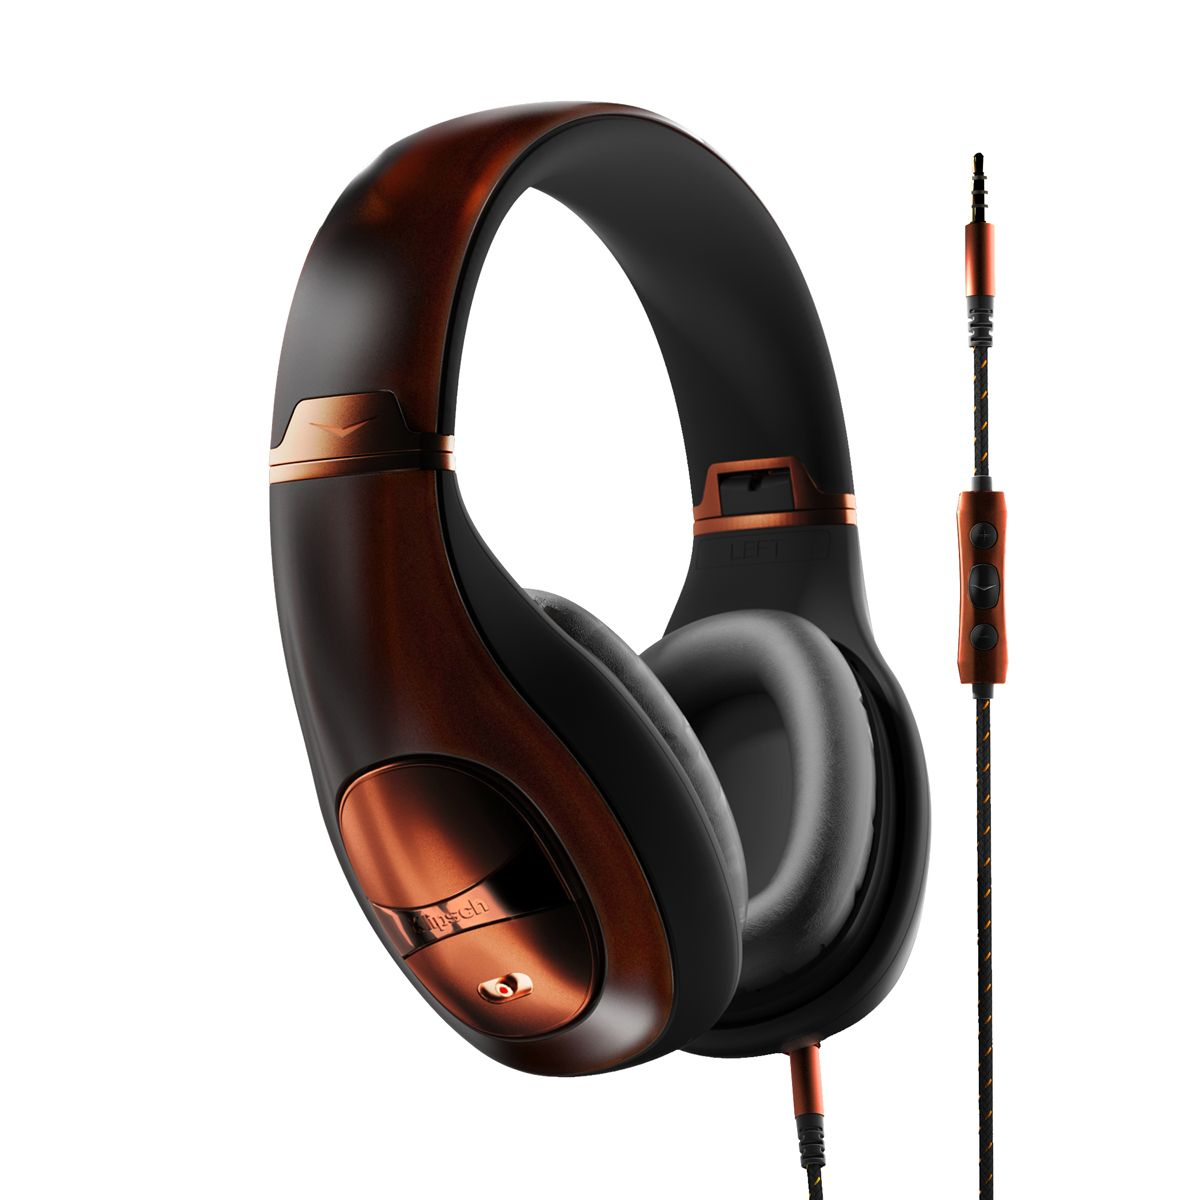 Klipsch Mode Noise Canceling Headphones